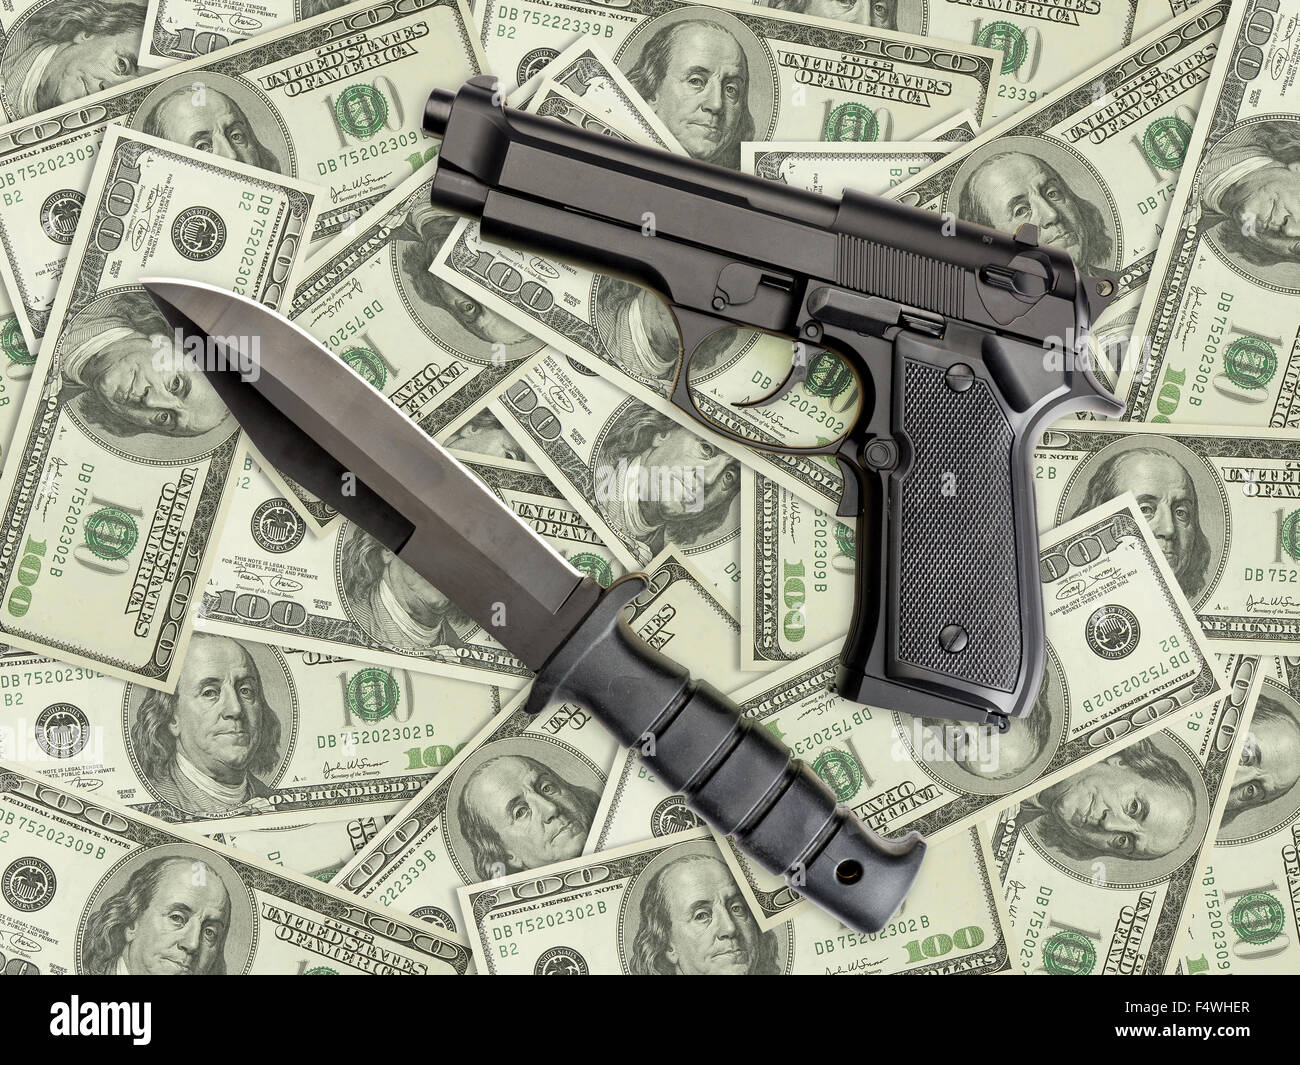 Knife and pistol placed on pile of american one hundred dollar bills - Stock Image